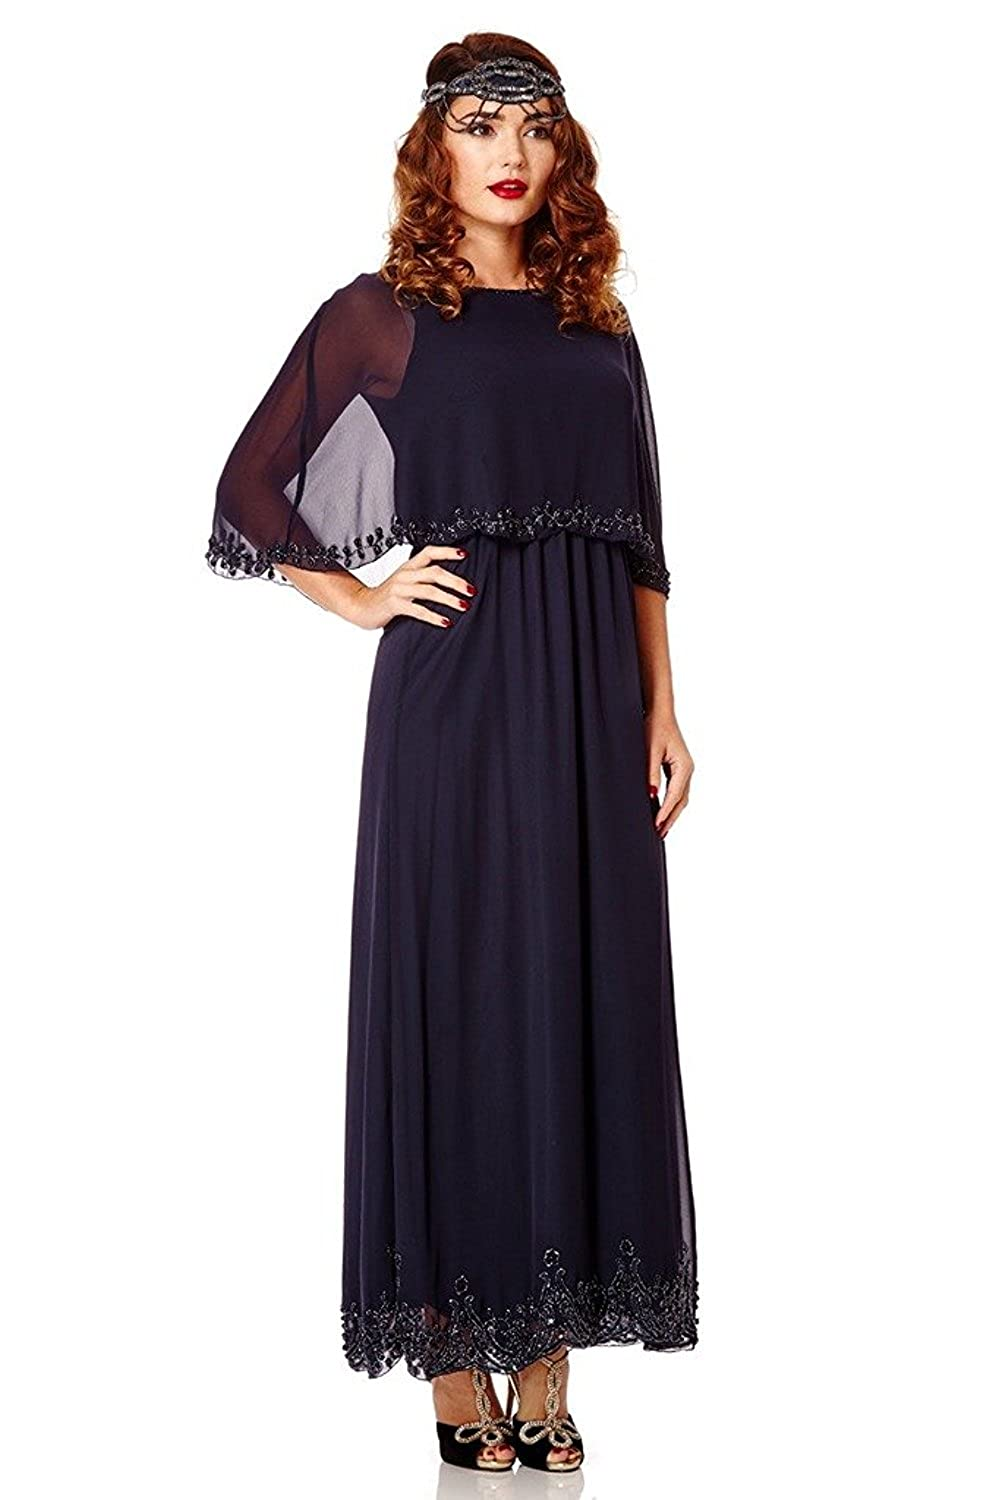 1920s Dresses UK | Flapper, Gatsby, Downton Abbey Dress Carolyn Vintage Inspired Maxi Cape Dress in Navy Blue £49.00 AT vintagedancer.com